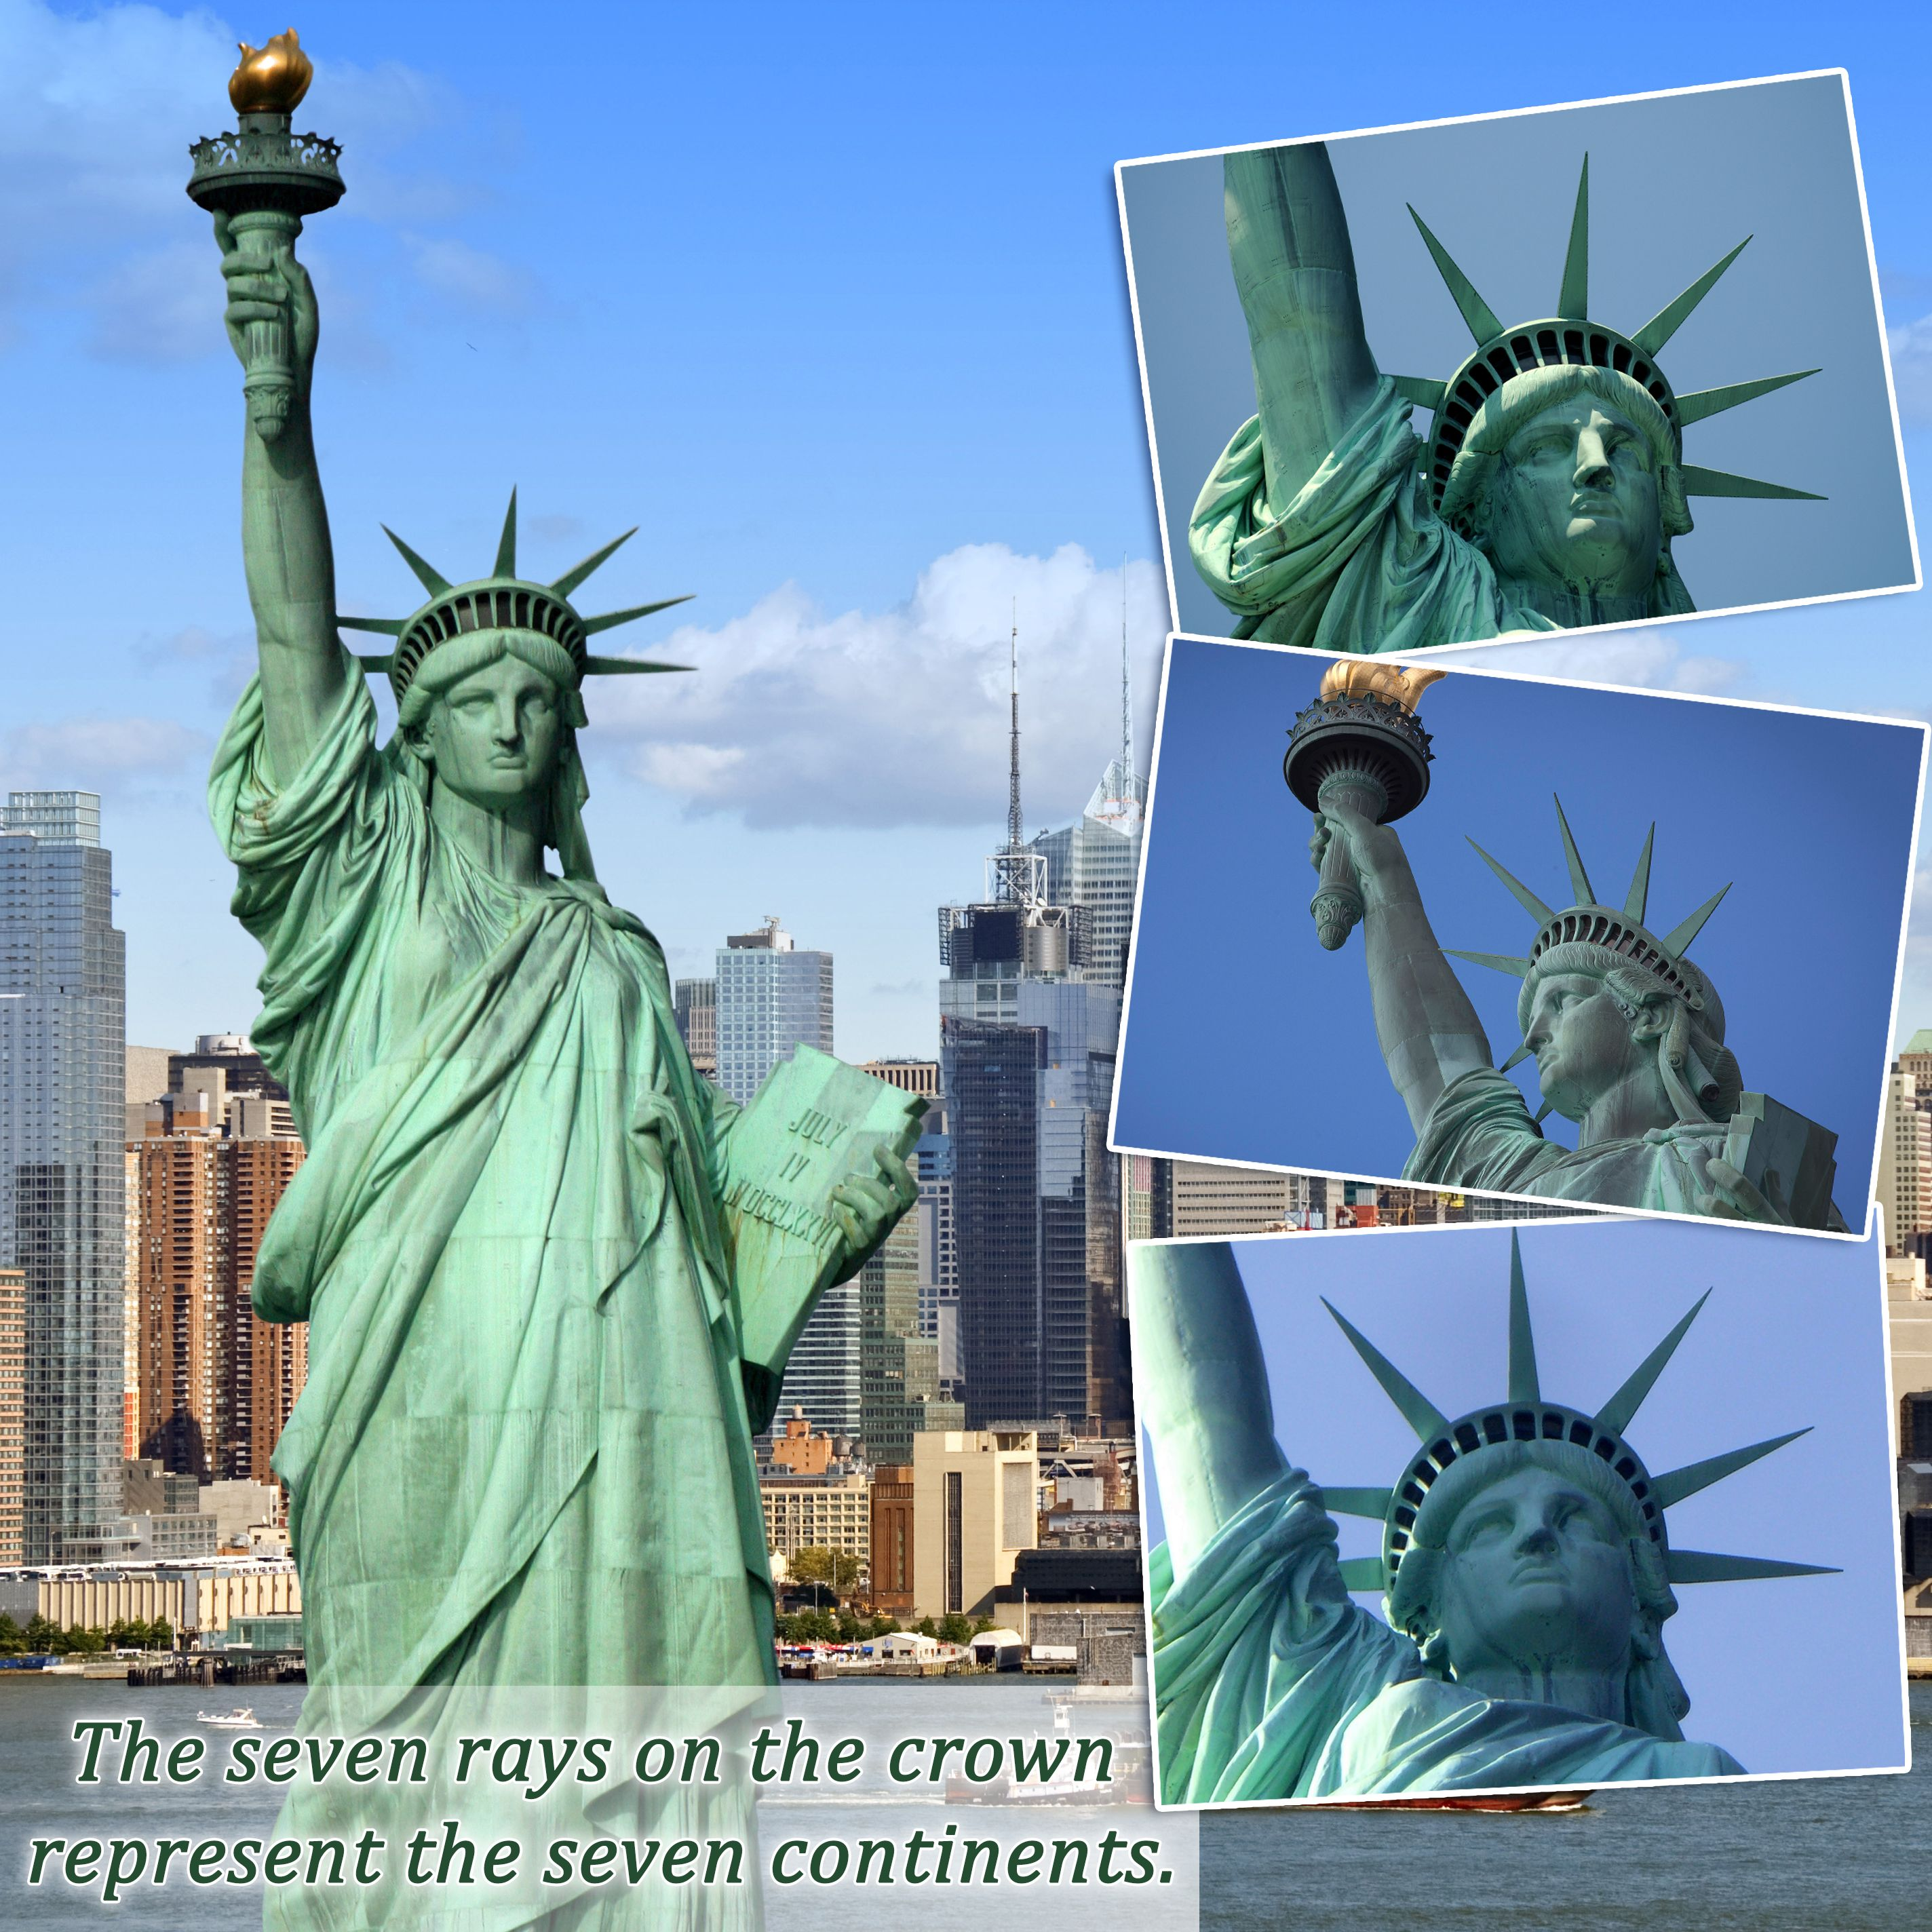 The Seven Rays On The Crown Of The Statue Of Liberty